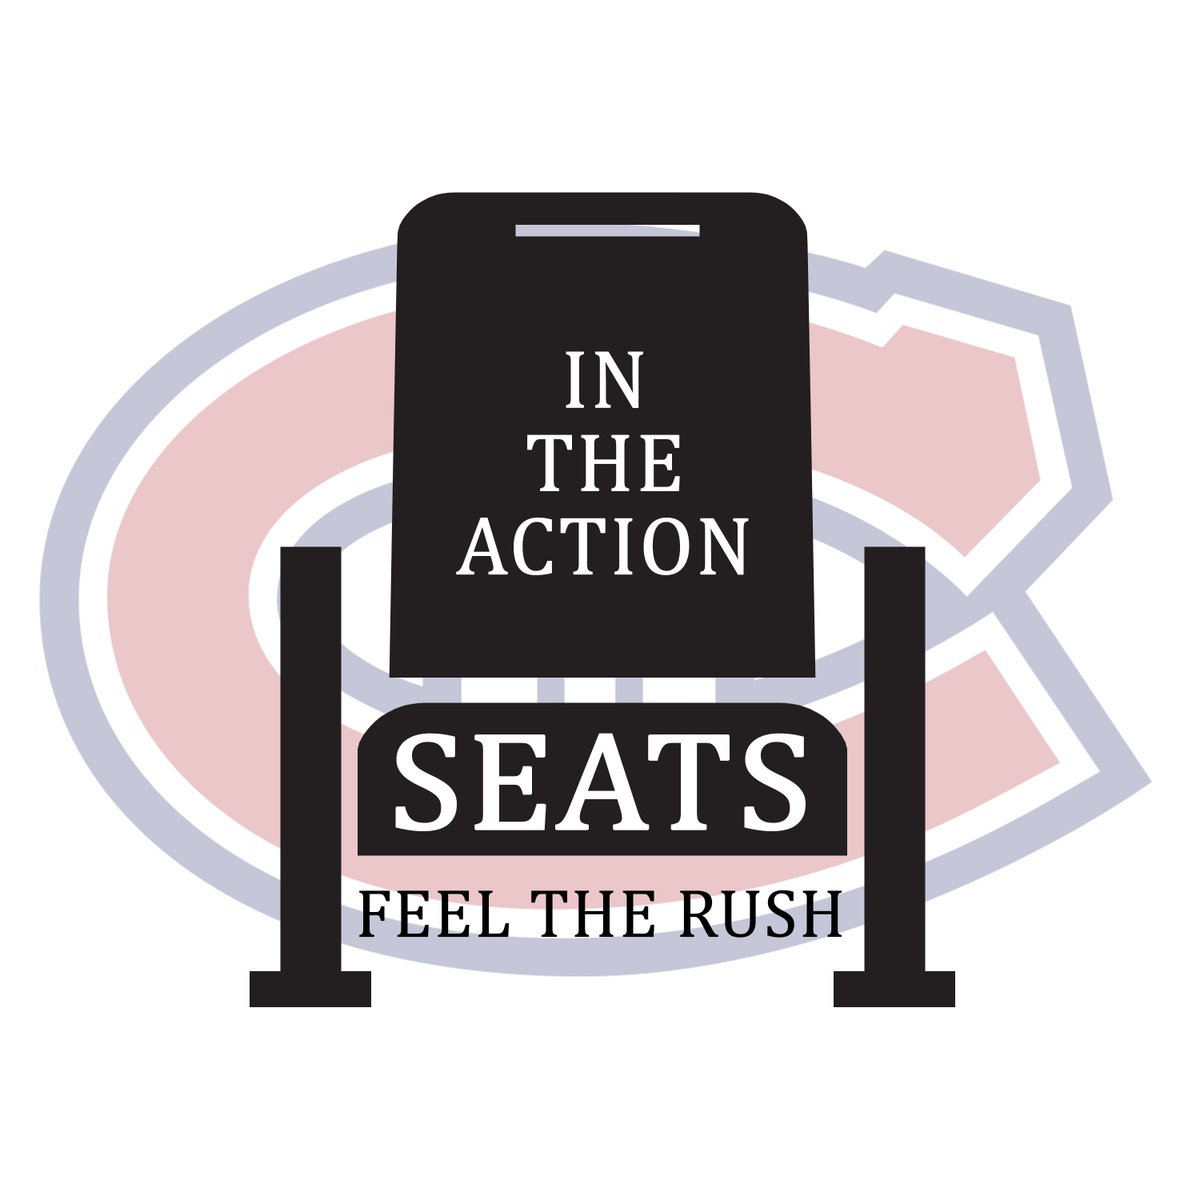 #NHL TICKET #GIVEAWAY - RT &amp; FOLLOW FOR A CHANCE TO #WIN A PAIR FOR YOUR TEAM!! #Habs #Canadiens #Winnipeg #nhljets #Montreal #sens #Ottawa<br>http://pic.twitter.com/r27qsMHDx5